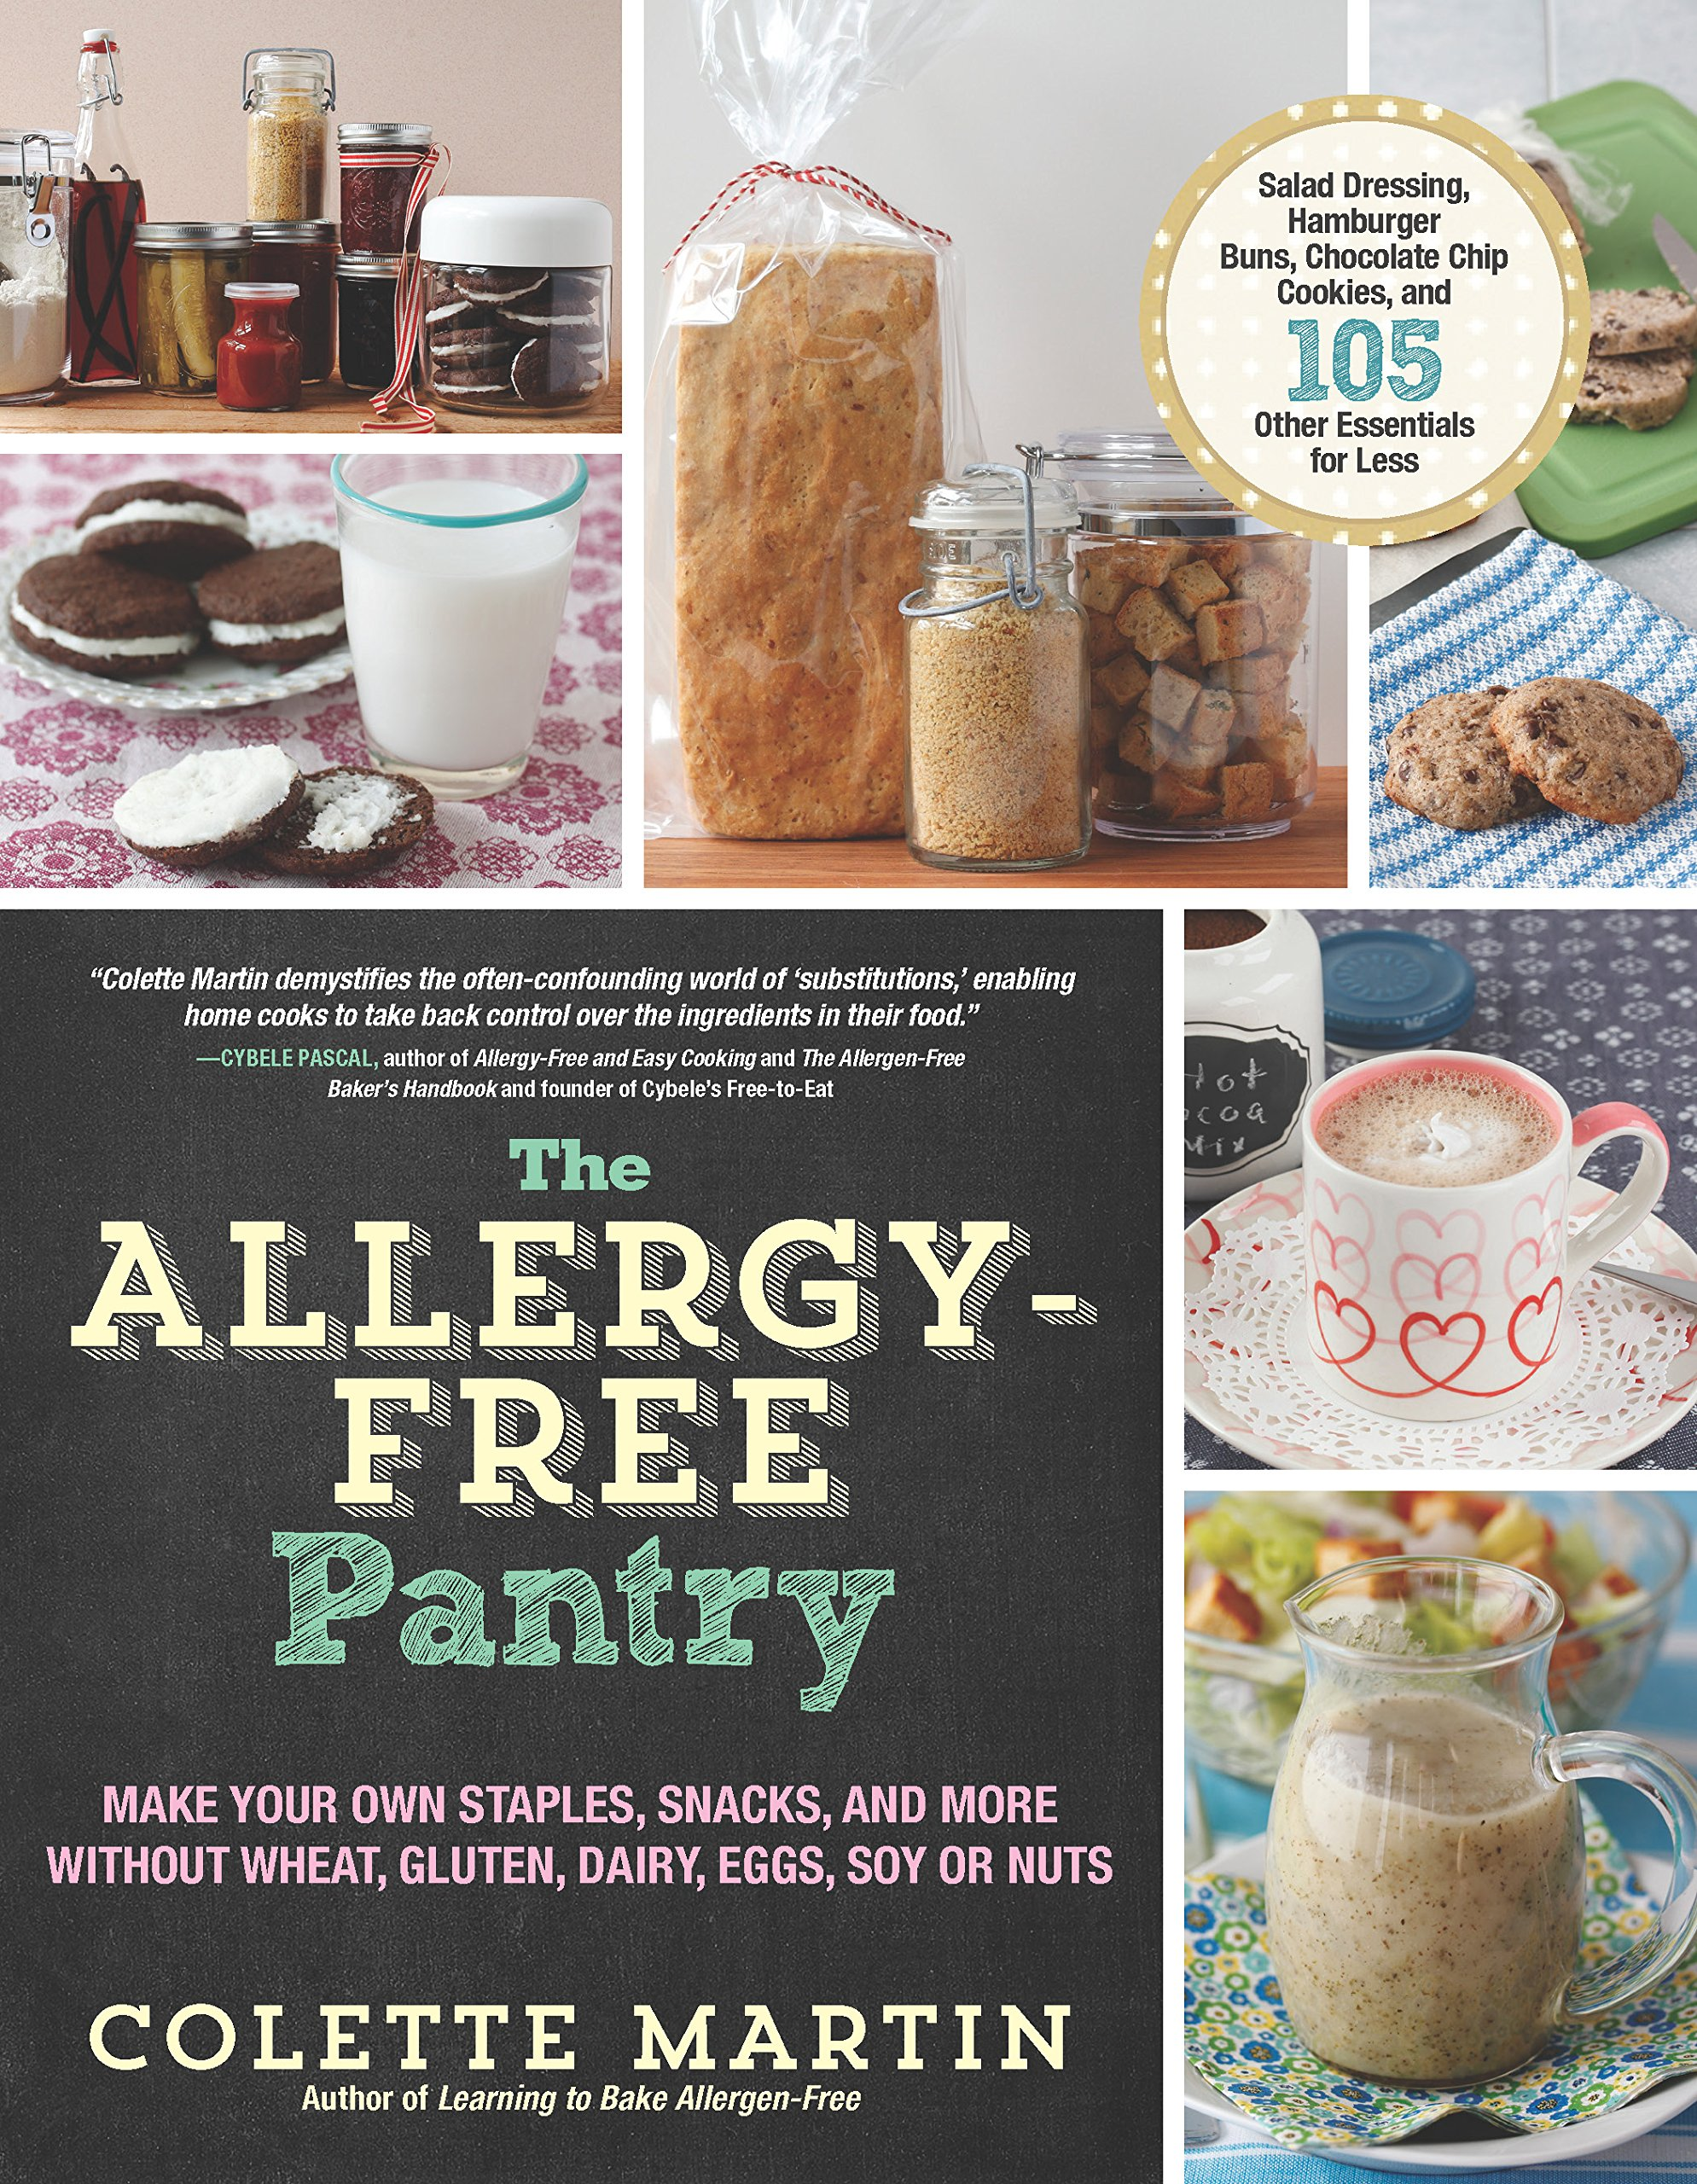 The Allergy-Free Pantry: Make Your Own Staples, Snacks, and More Without Wheat, Gluten, Dairy, Eggs, Soy or Nuts by The Experiment